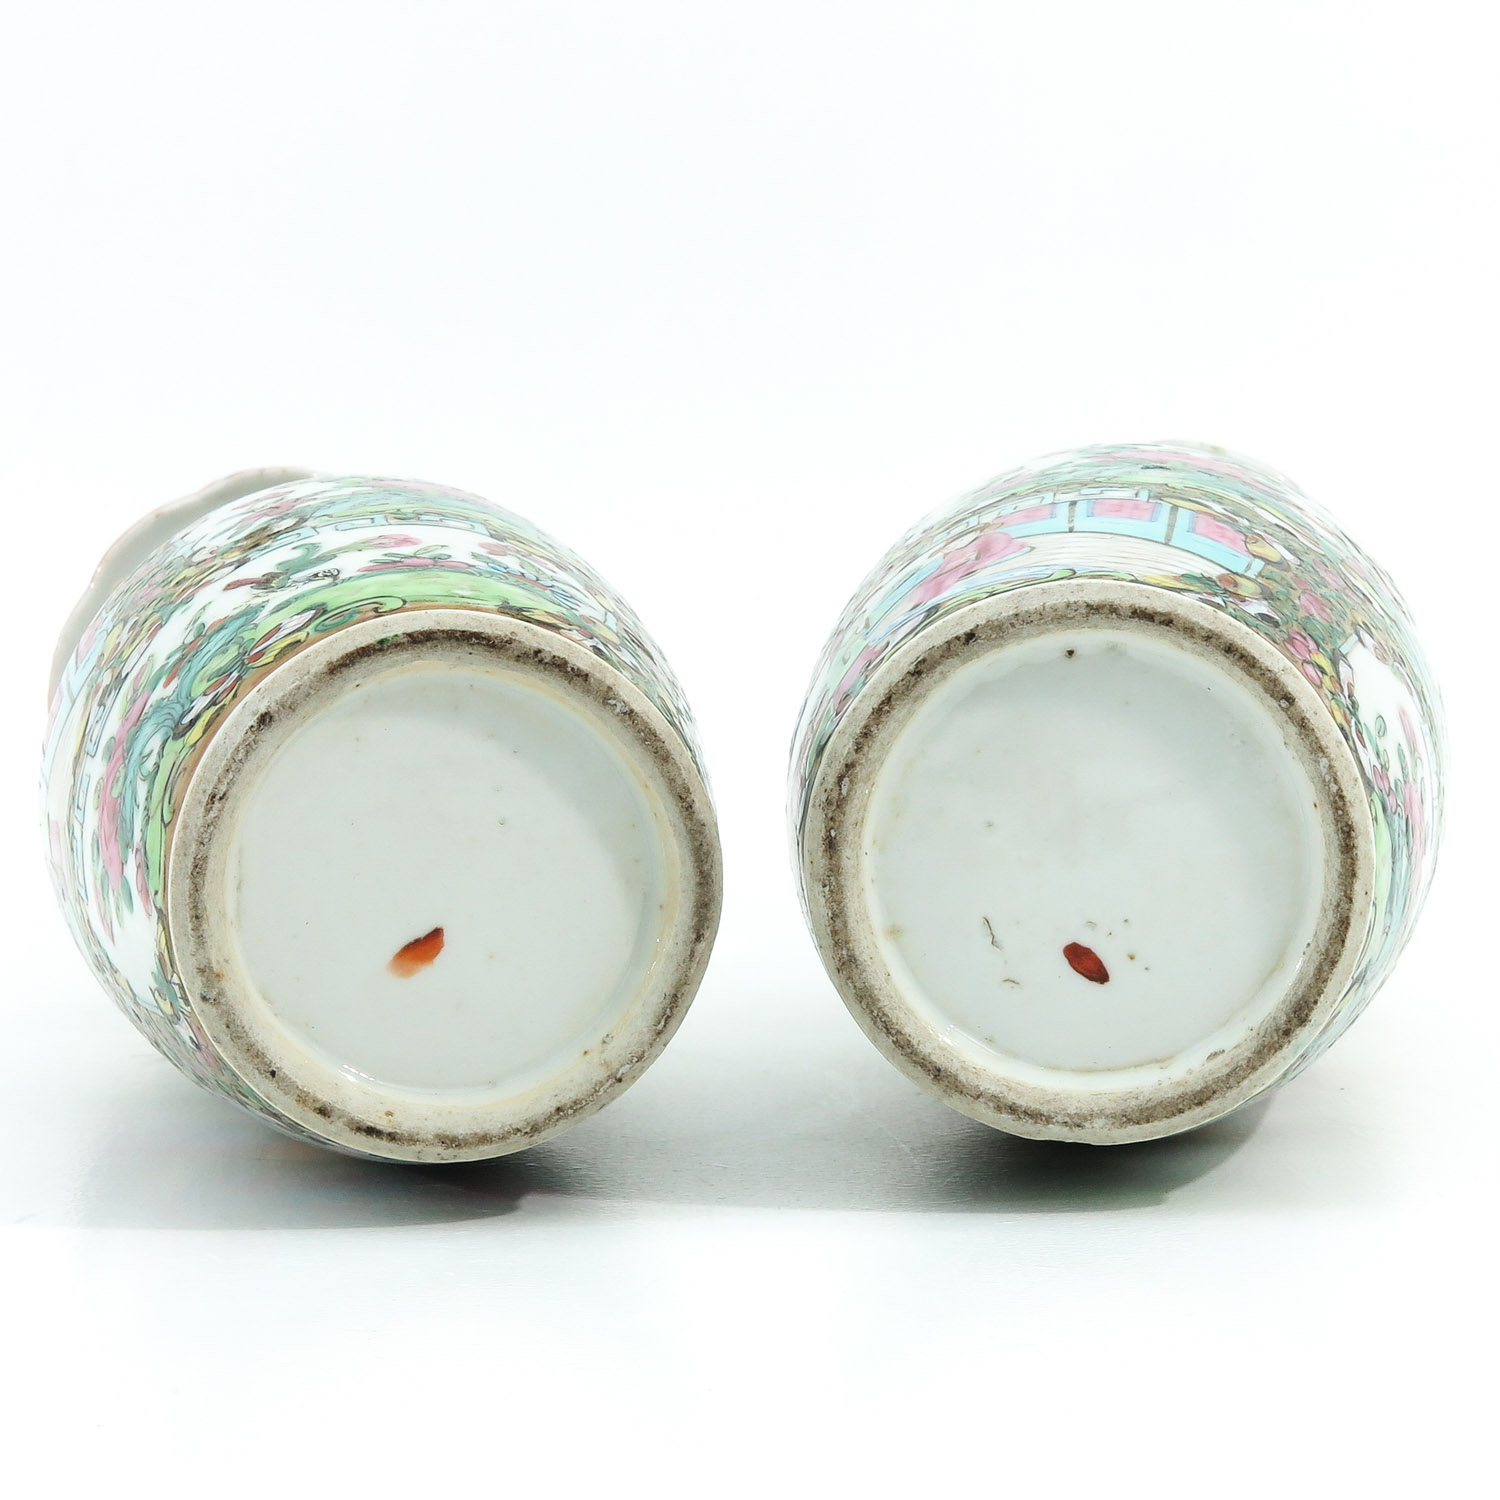 A Pair of Cantonese Vases - Image 6 of 9